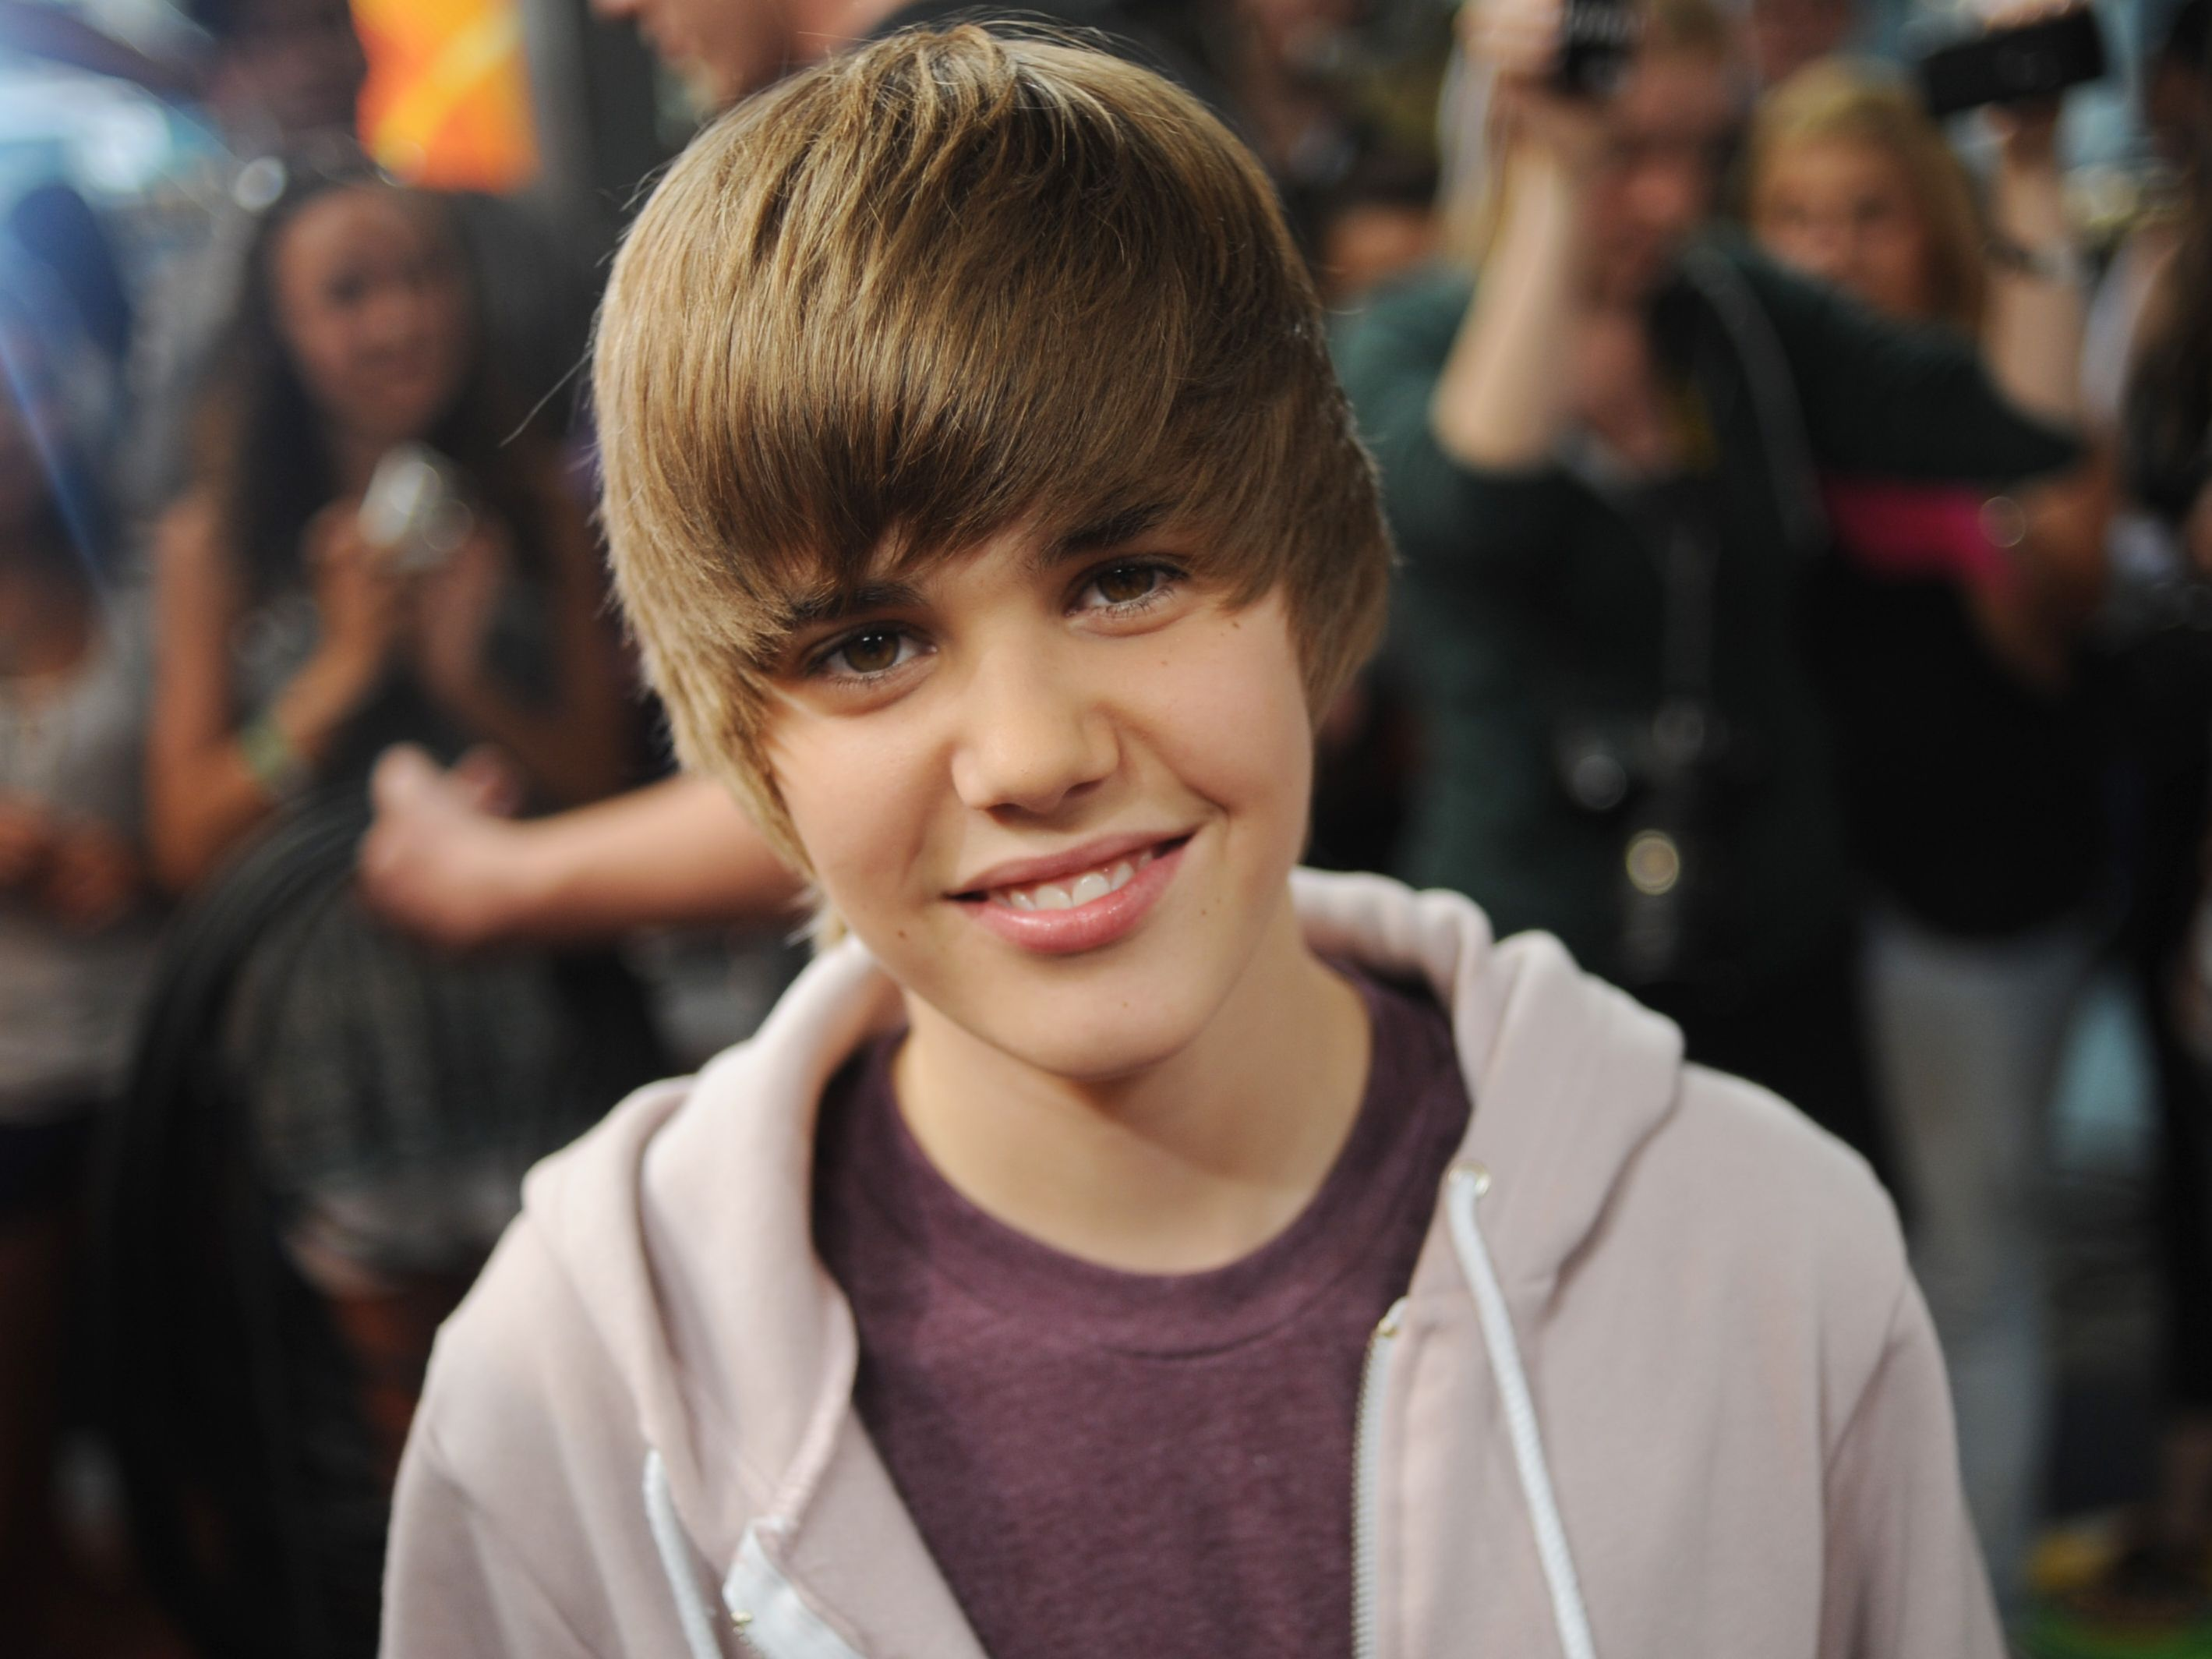 10 Years Of Justin Bieber Fans Reflect On How Beliebing Changed Their Lives Mtv